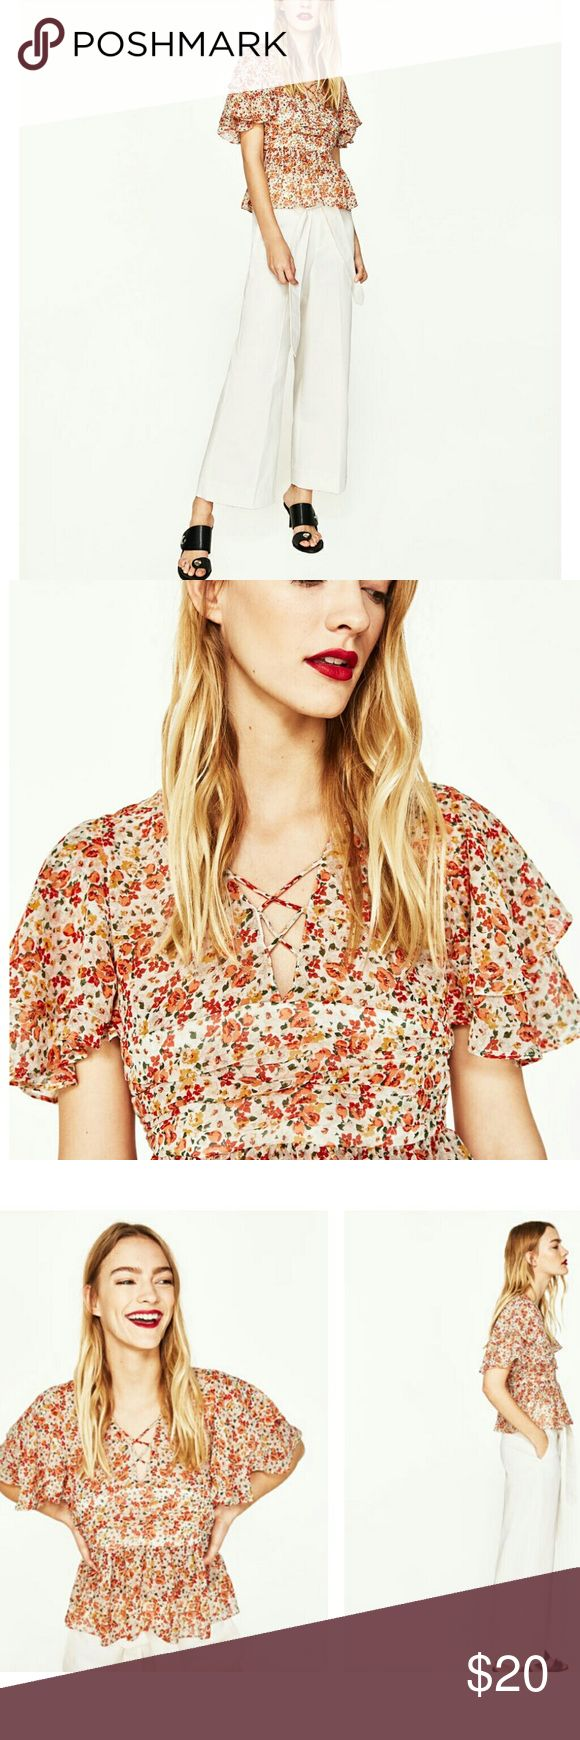 Floral Zara top This floral zara top with ruffle shoulder style is in trend. It's very beautiful and stylish. Brand new with tag. Currently sold out and out of stock. Zara Tops